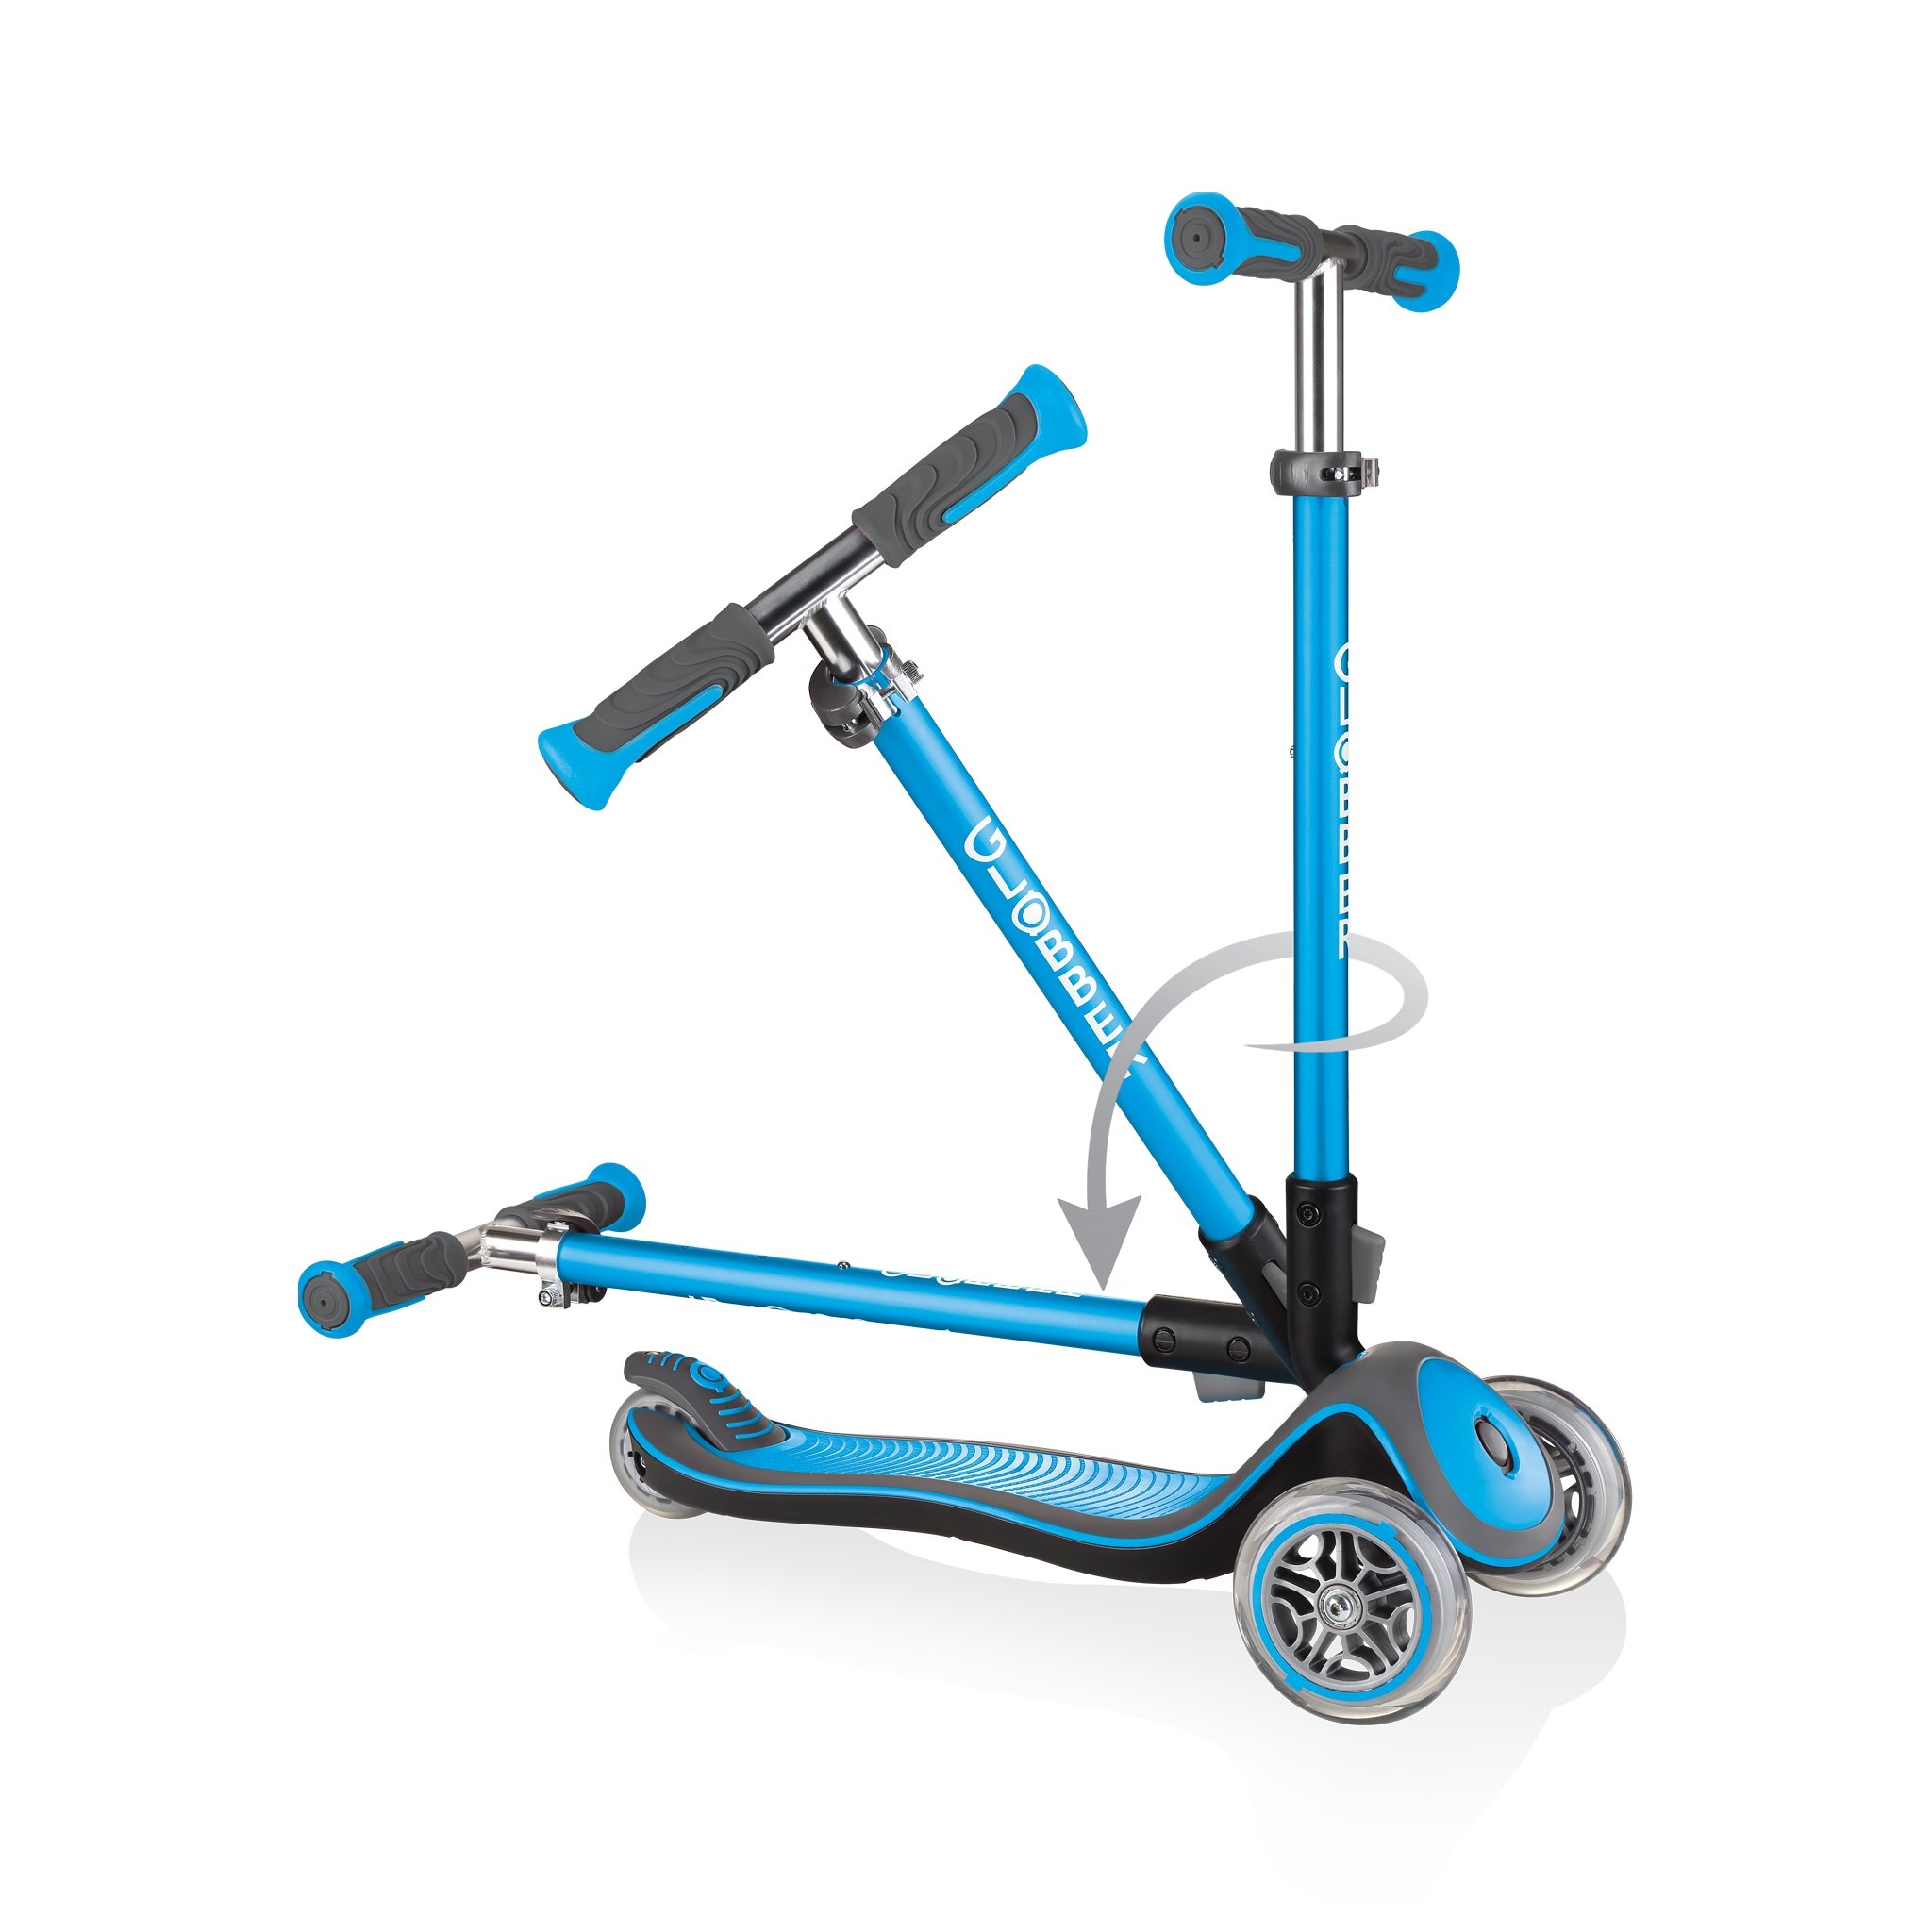 Globber-ELITE-DELUXE-3-wheel-fold-up-scooter-for-kids-sky-blue